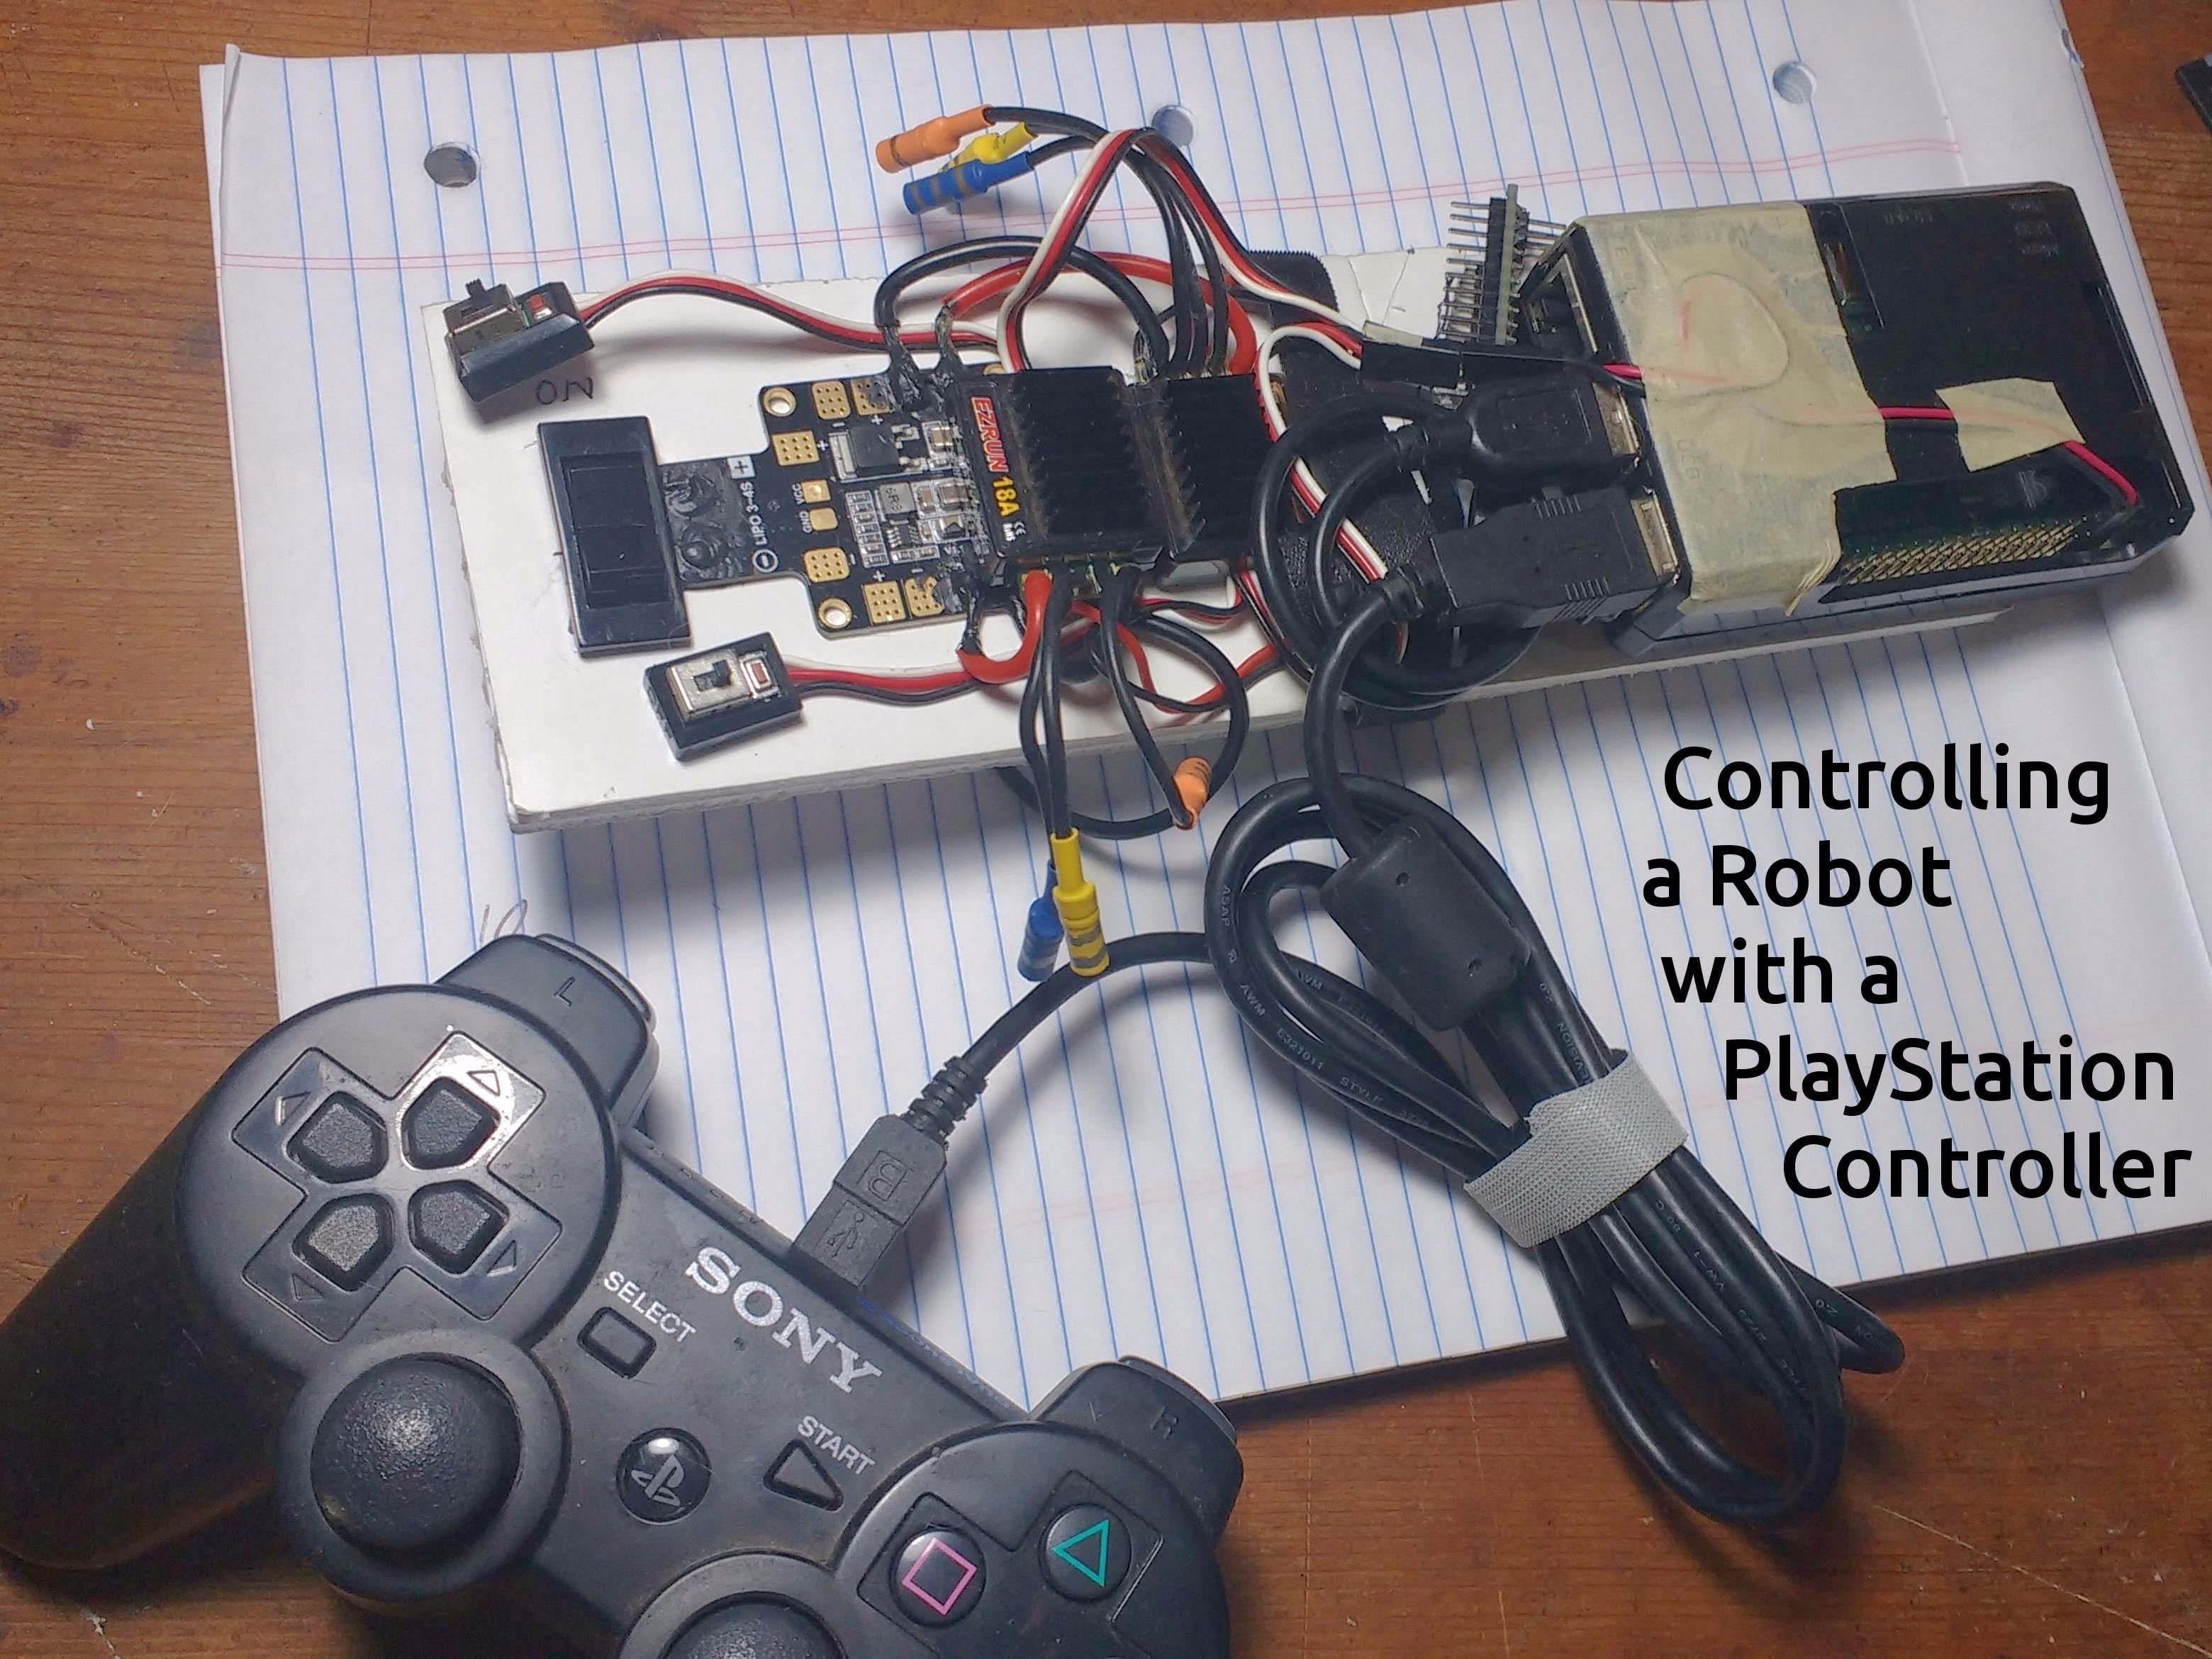 Controlling a Robot with a PlayStation Controller